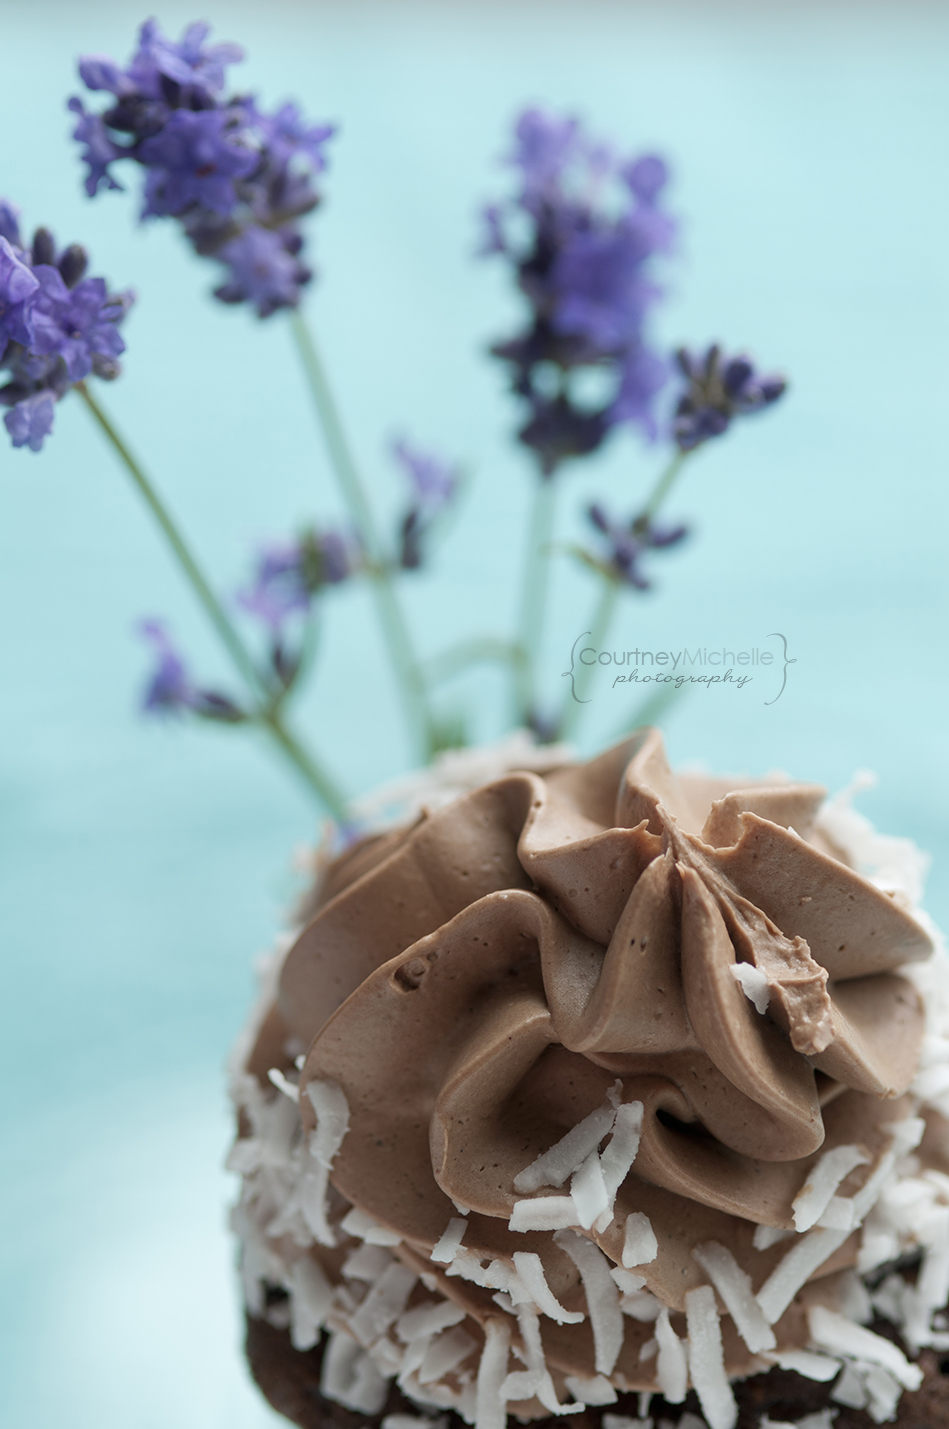 chocolate-cupcake-chicago-food-lifestyle-photography-by-courtney-laper.jpg